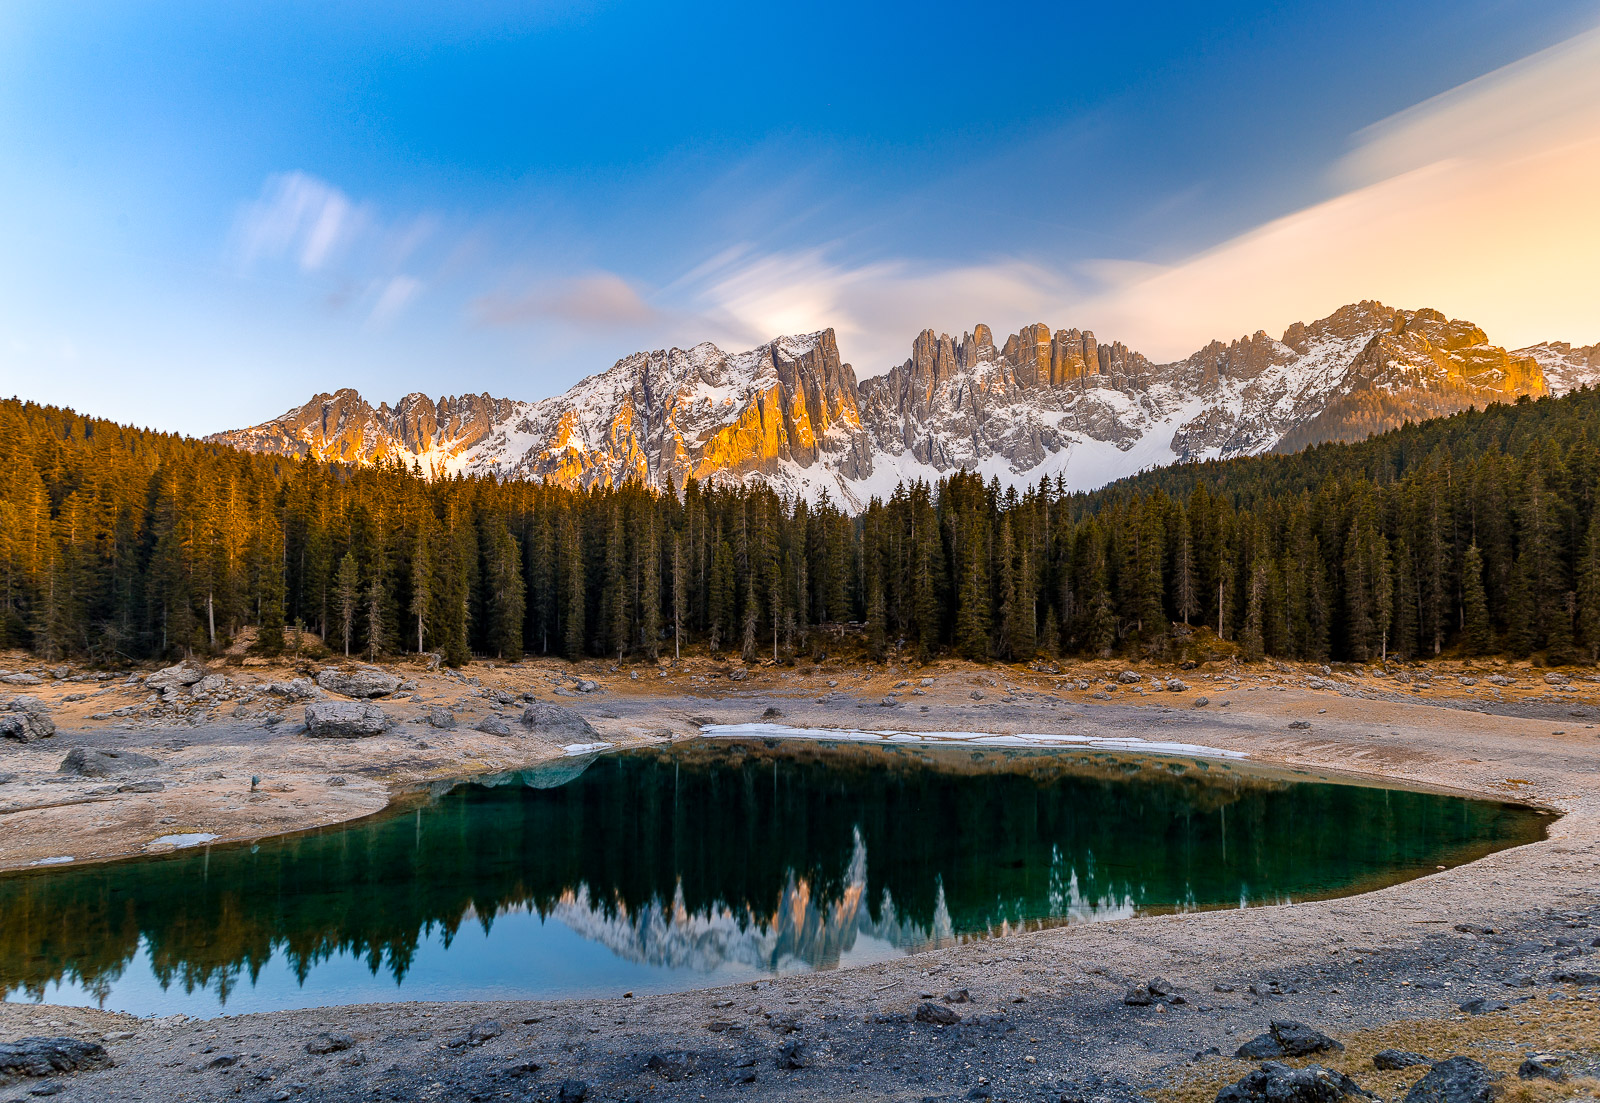 Dolomites Photography - Karersee with the view of Rosengarten and Latemar